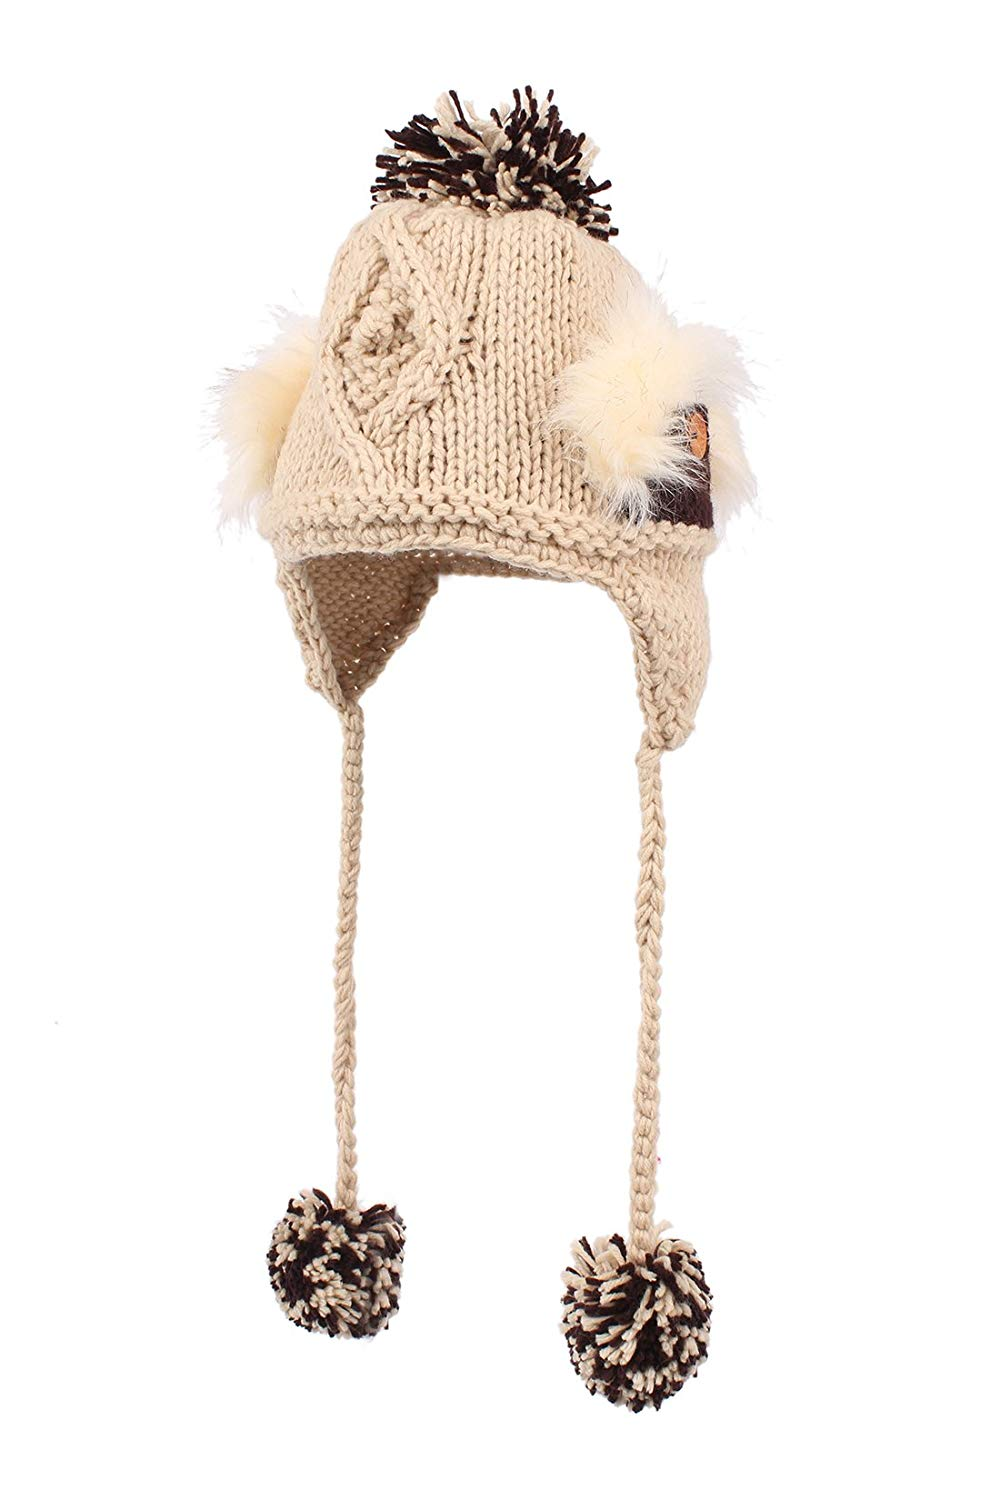 71ff4d9707e Get Quotations · HUAN XUN Earflap Hat Winter Faux Fur Trapper Ski Hats  Womens Girls Mens Multi Styles